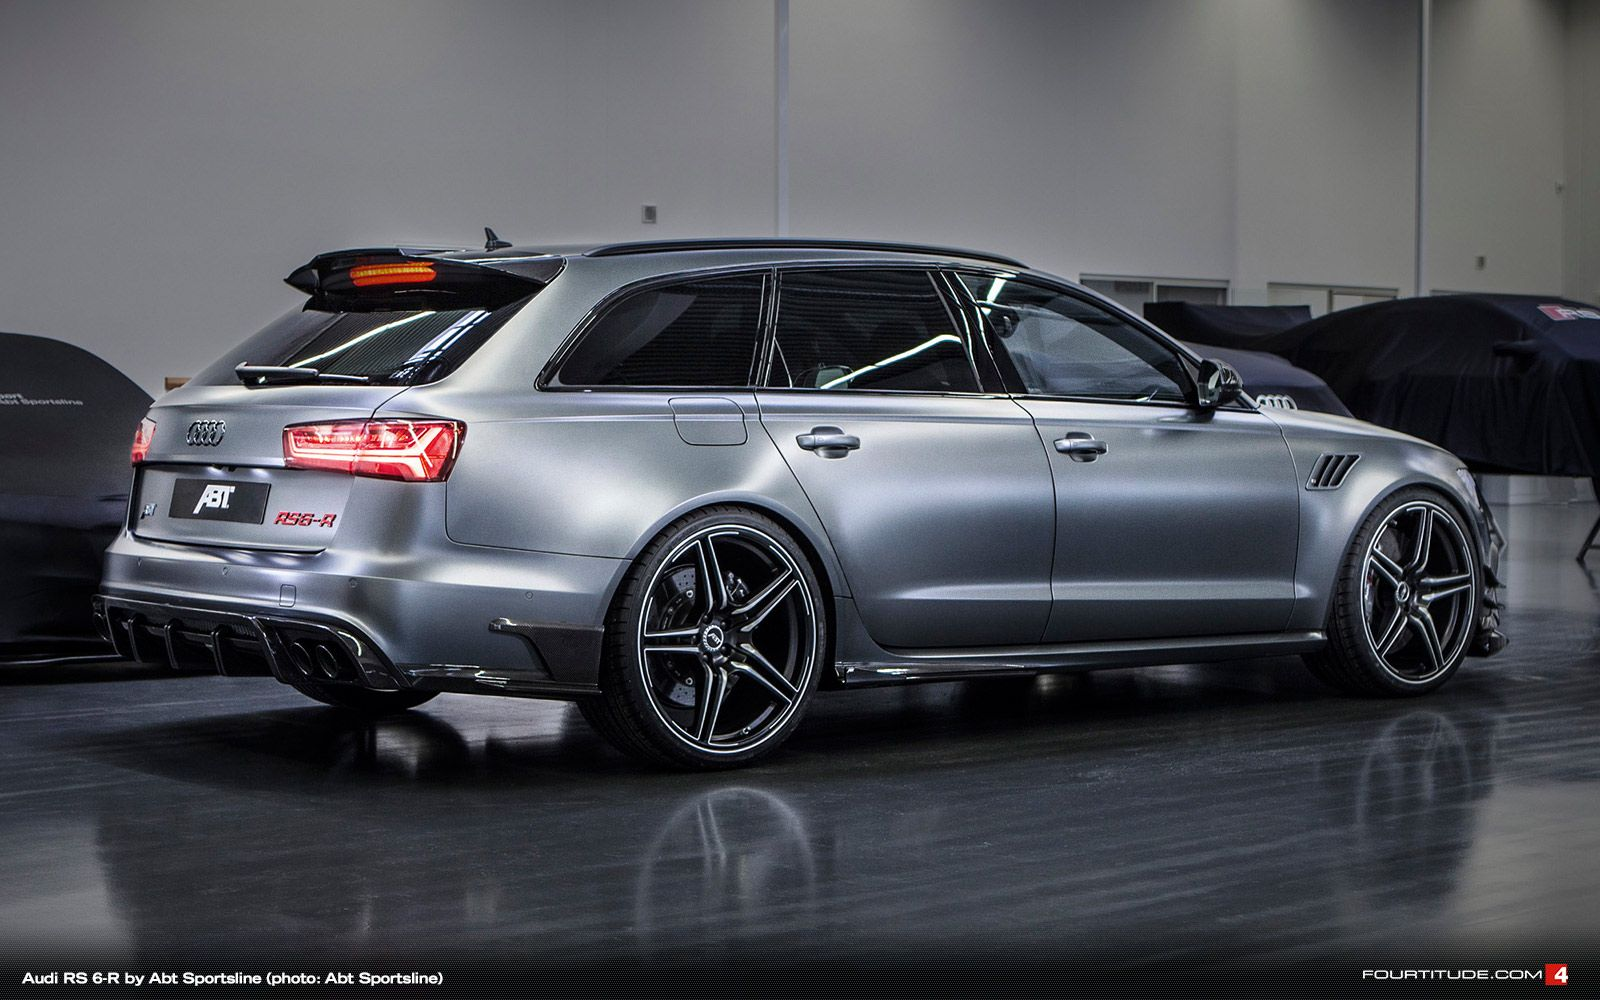 Audi rs 6 r avant by abt sportsline